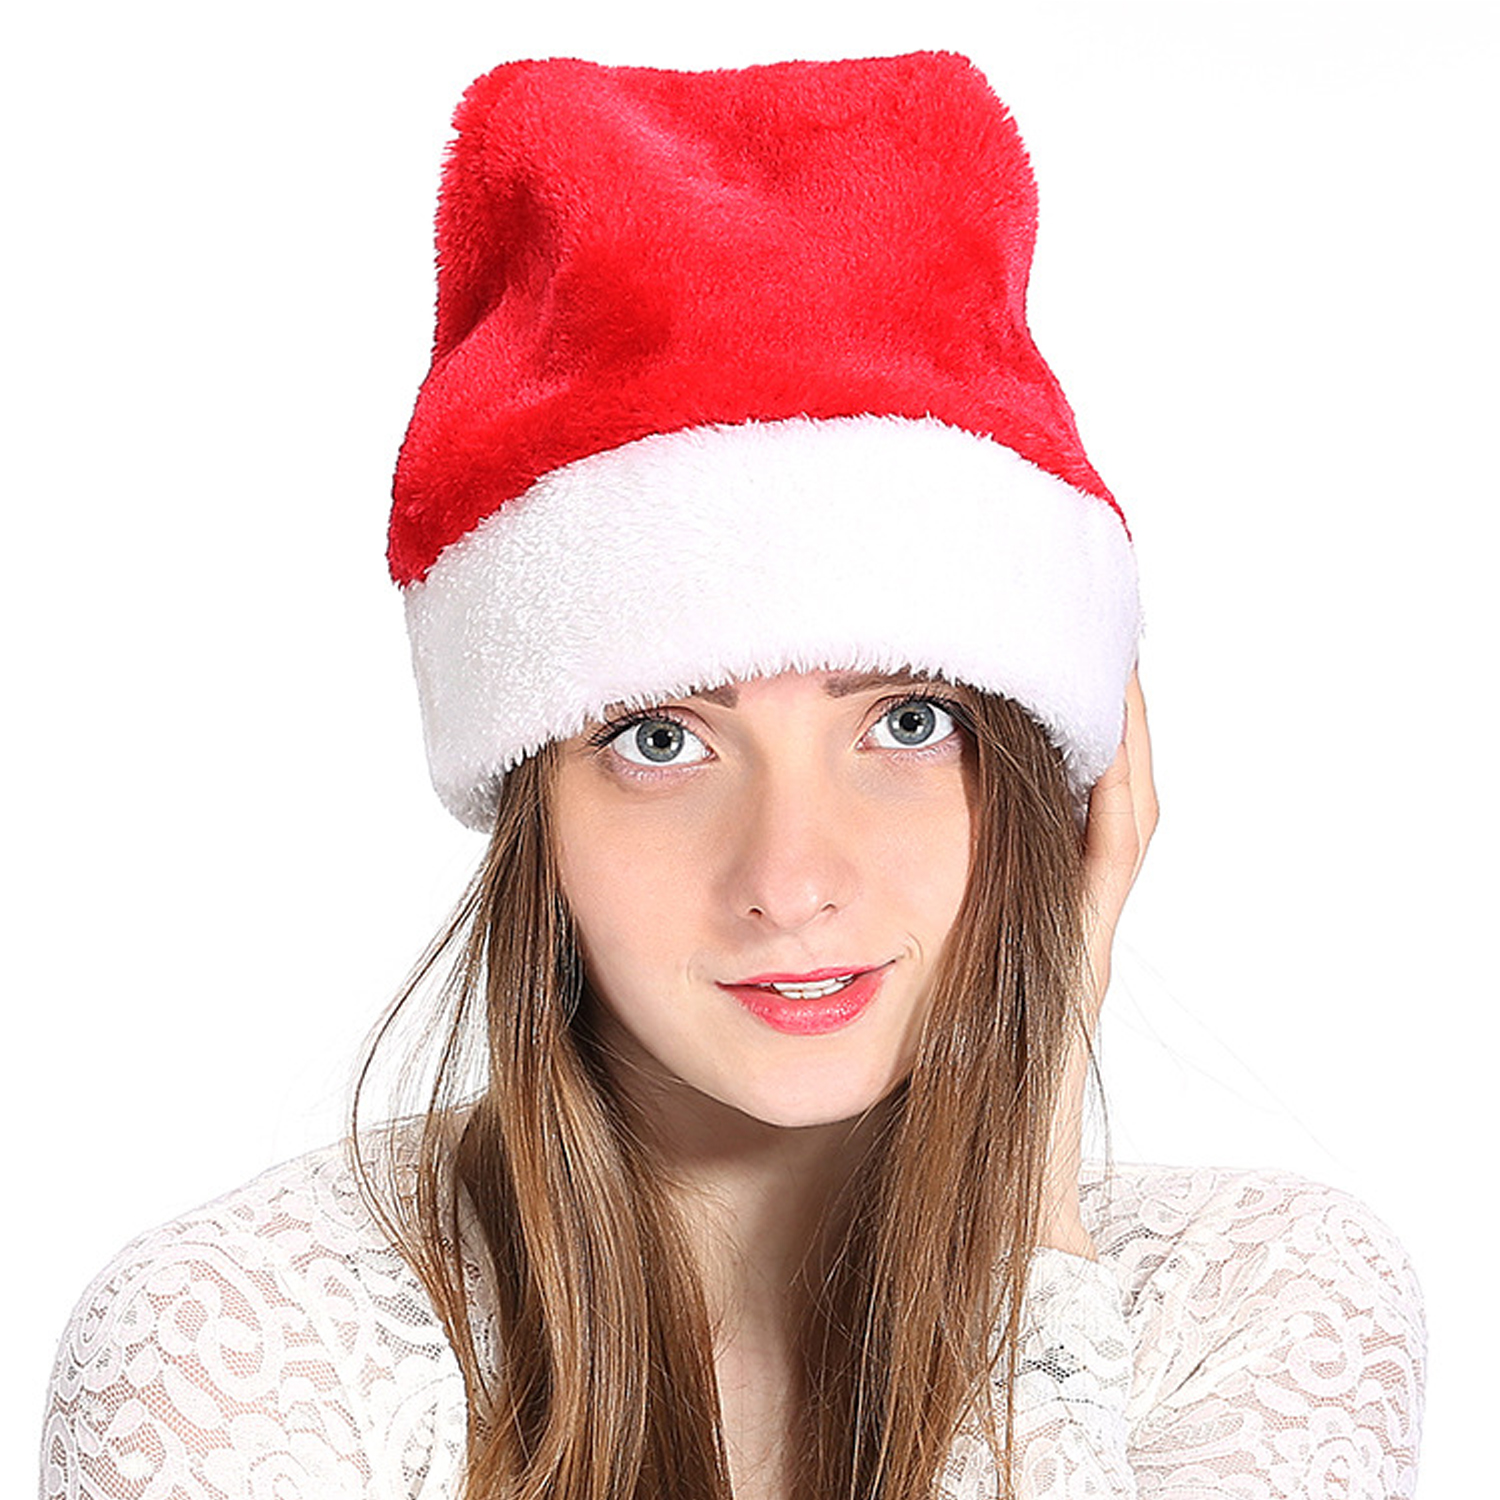 Unisex Thicken Soft Warm Plush Christmas Xmas Santa Claus Hat For Adults Kids Party Carnival Celebration